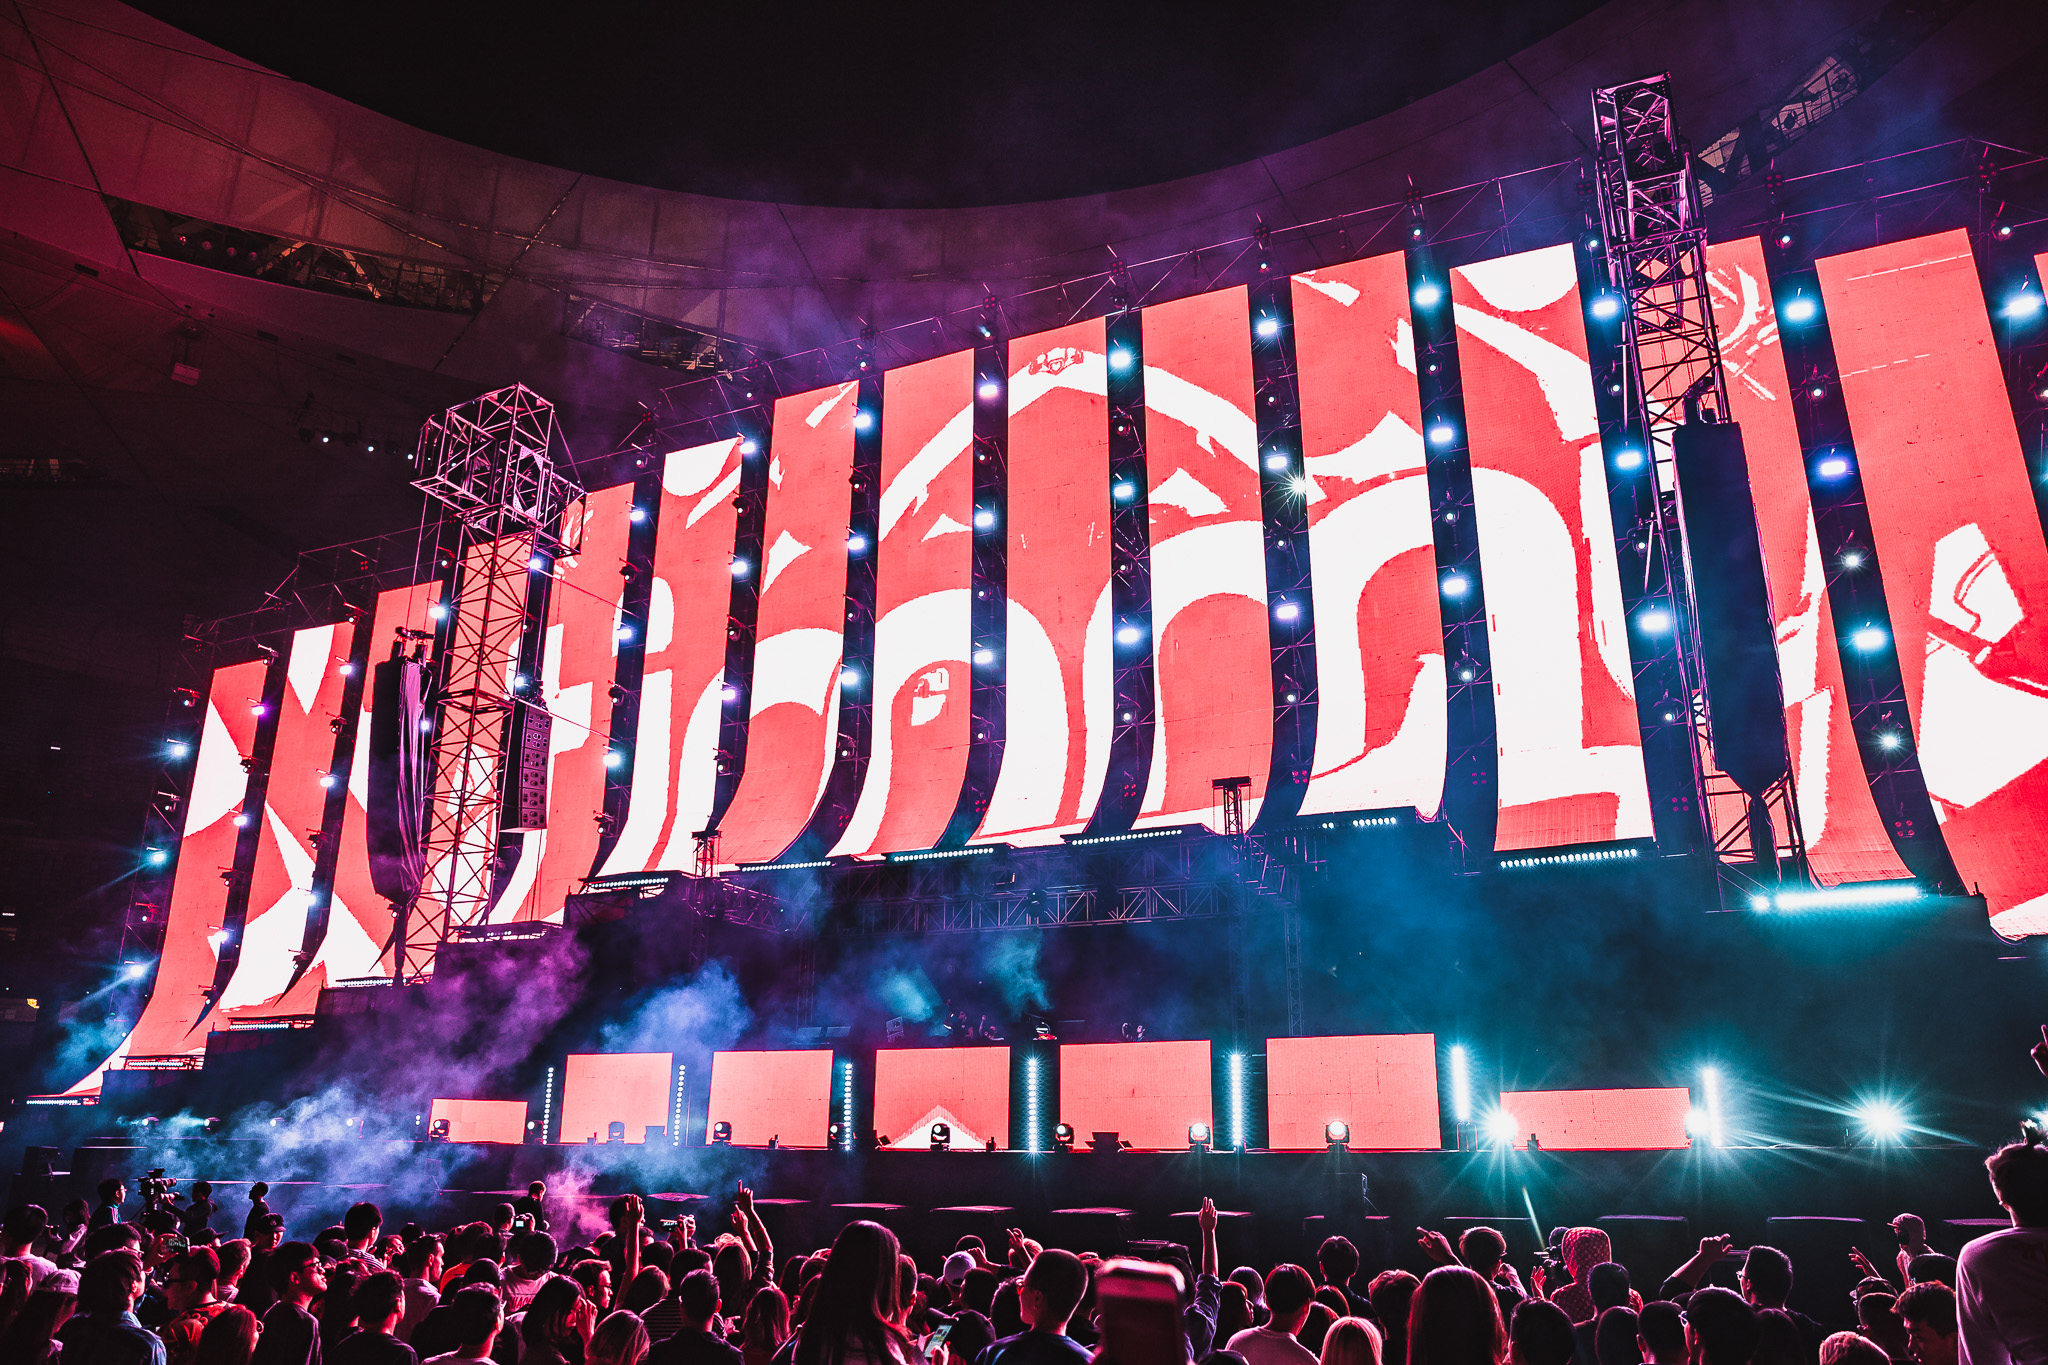 Neon Festival – Birds Nest Stadium Beijing, China 9.22.18